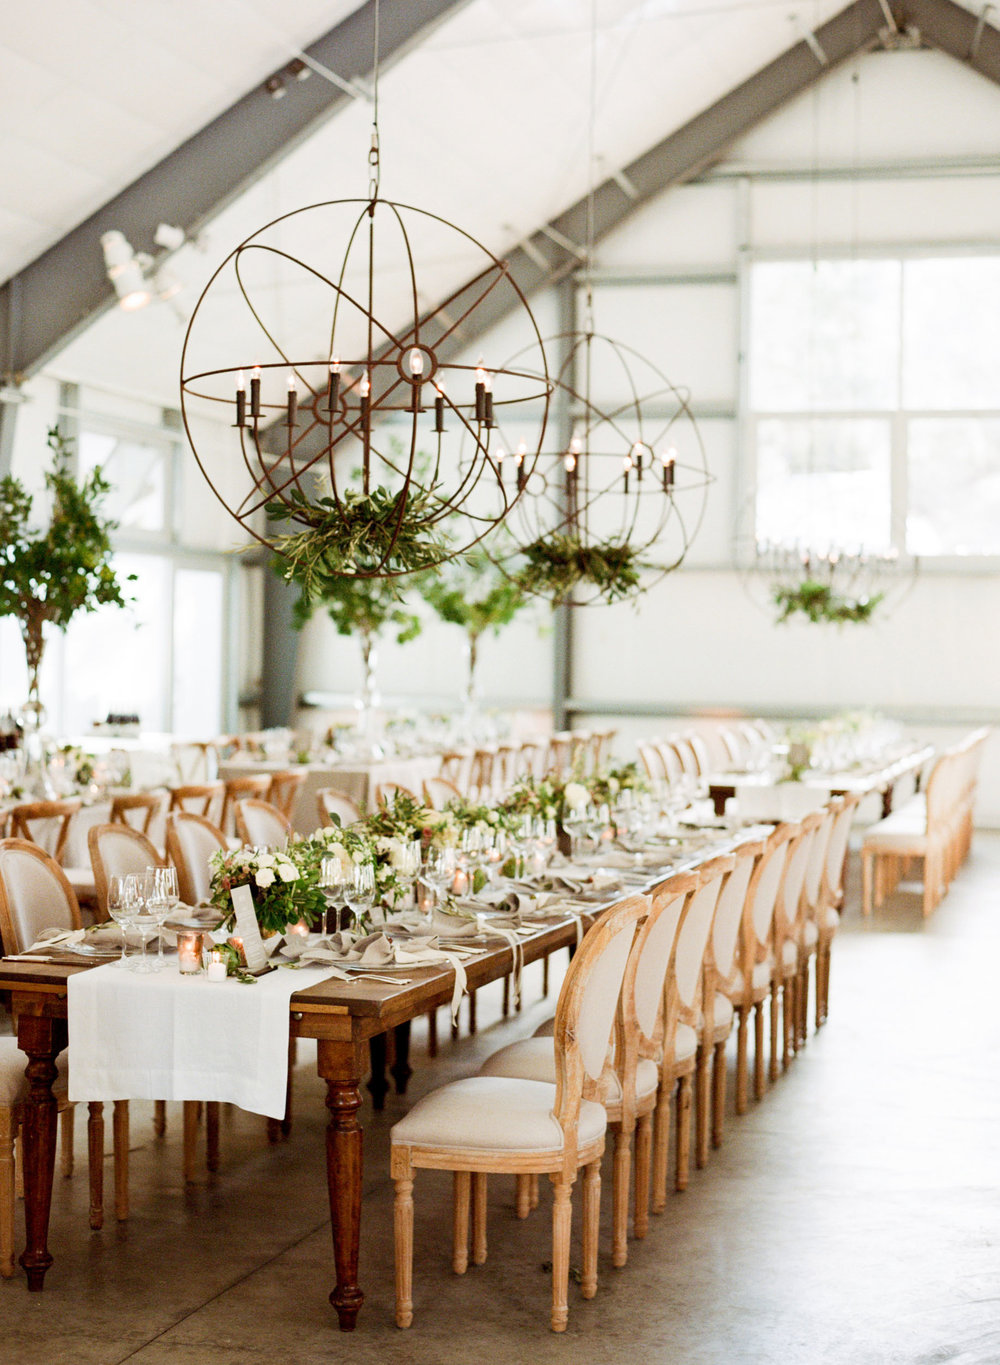 Industrial wrought iron chandeliers decorated with olive branches give an industrial chic feel to an airy barn wedding reception; Sylvie Gil Photography